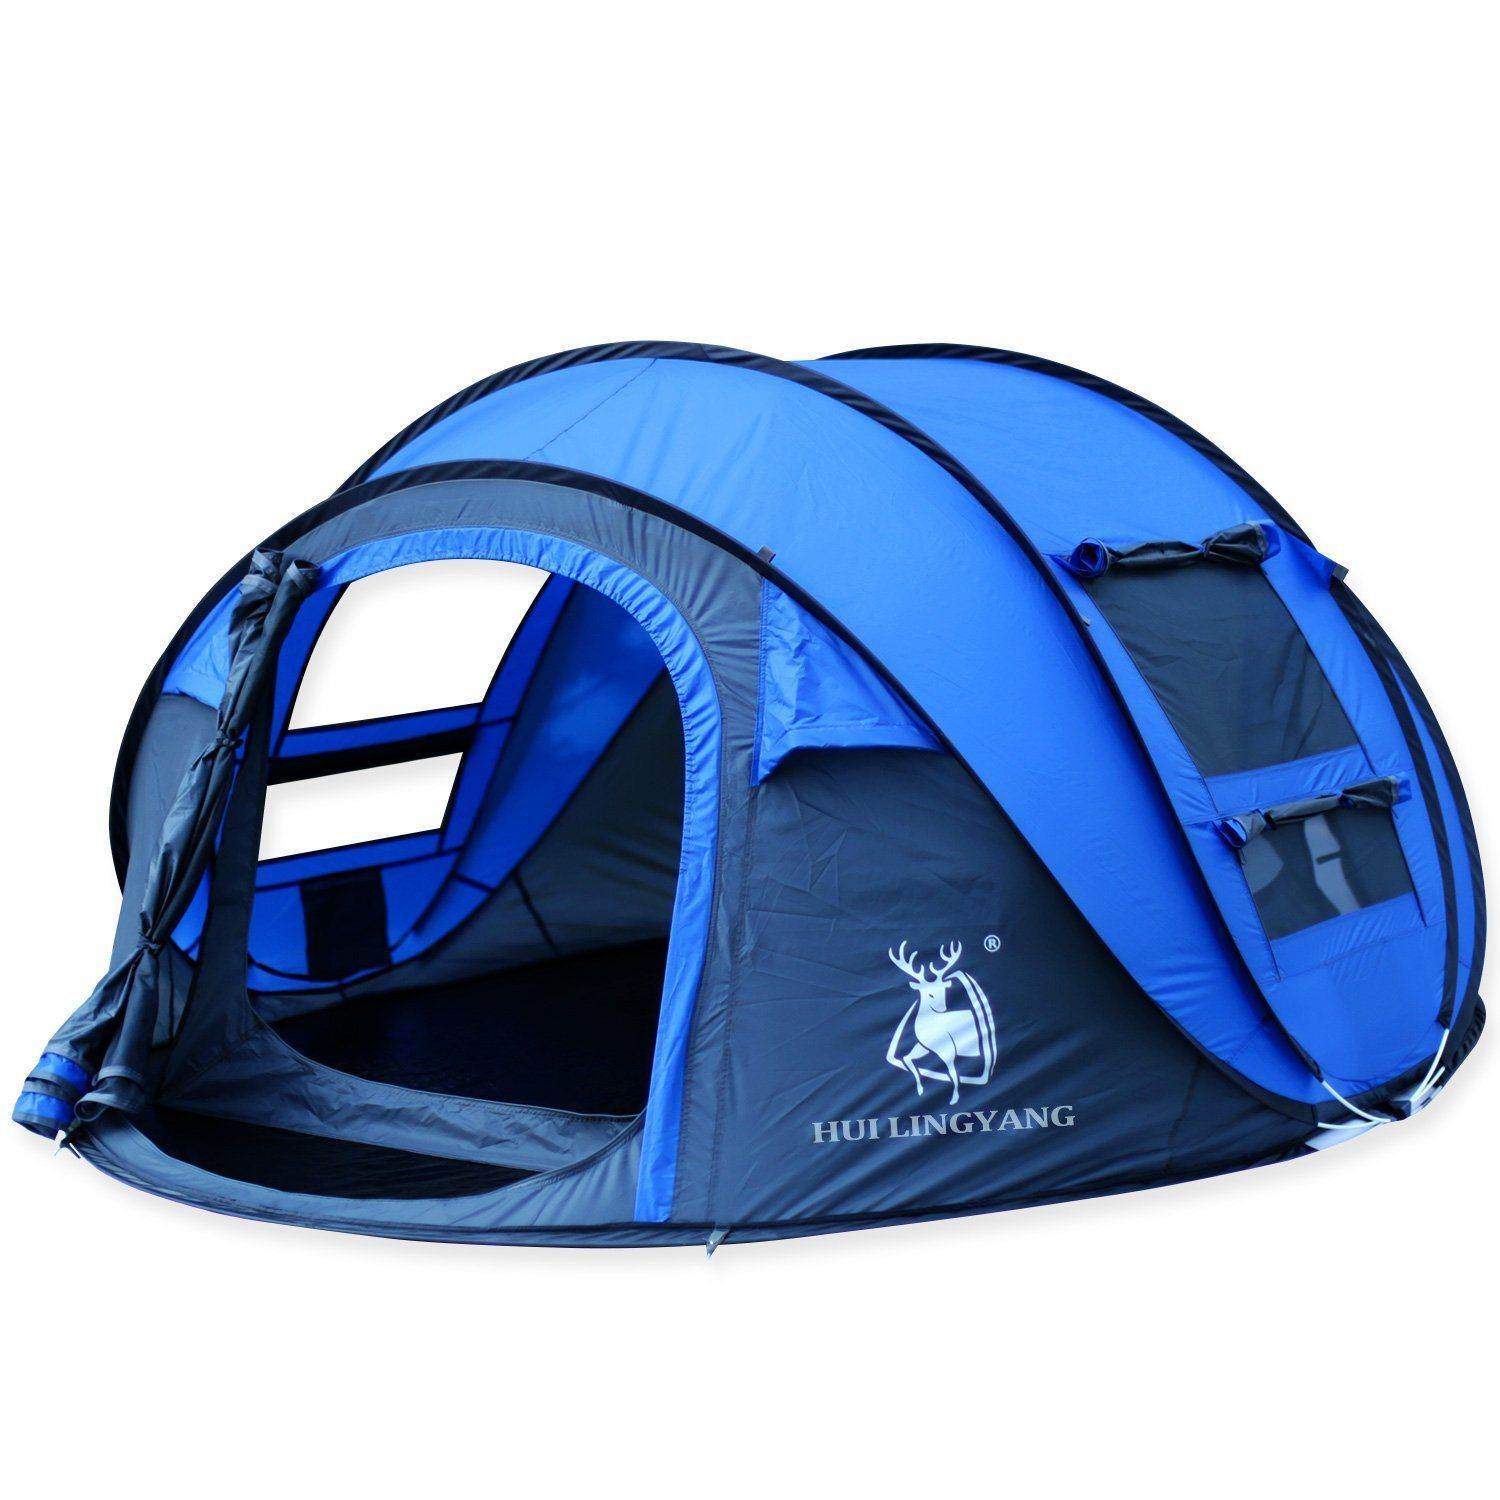 tent pop up tent tents for sale c&ing tents coleman tents c&ing gear c&ing equipment c&ing. Best Family ...  sc 1 st  Pinterest & tent pop up tent tents for sale camping tents coleman tents ...